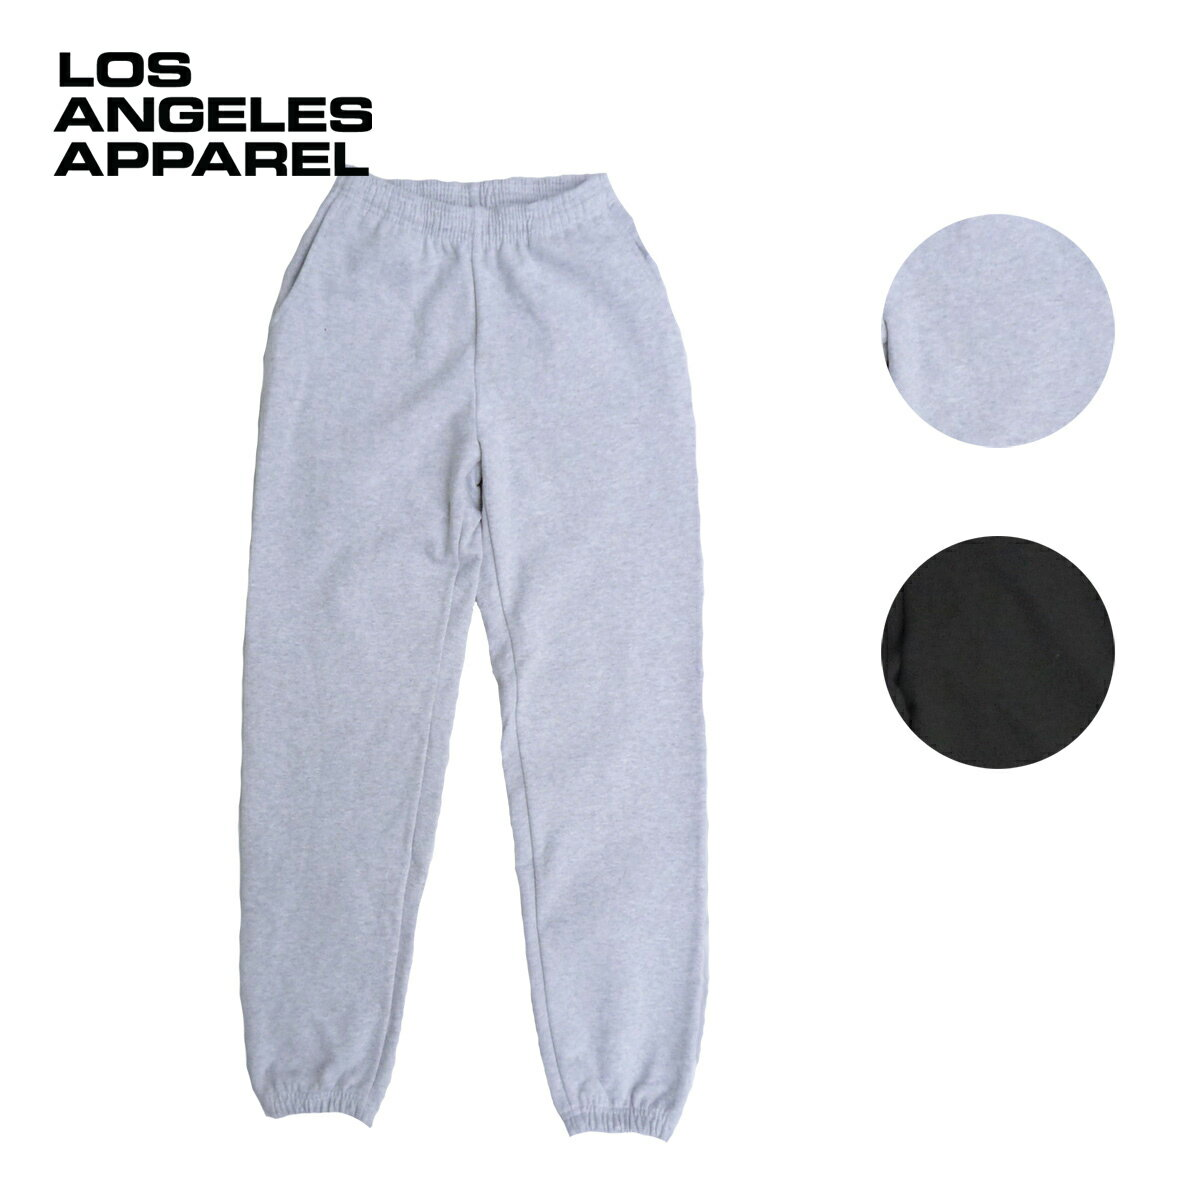 LOS ANGELES APPAREL ロサンゼルスアパレル 14oz SWEAT PTANTS